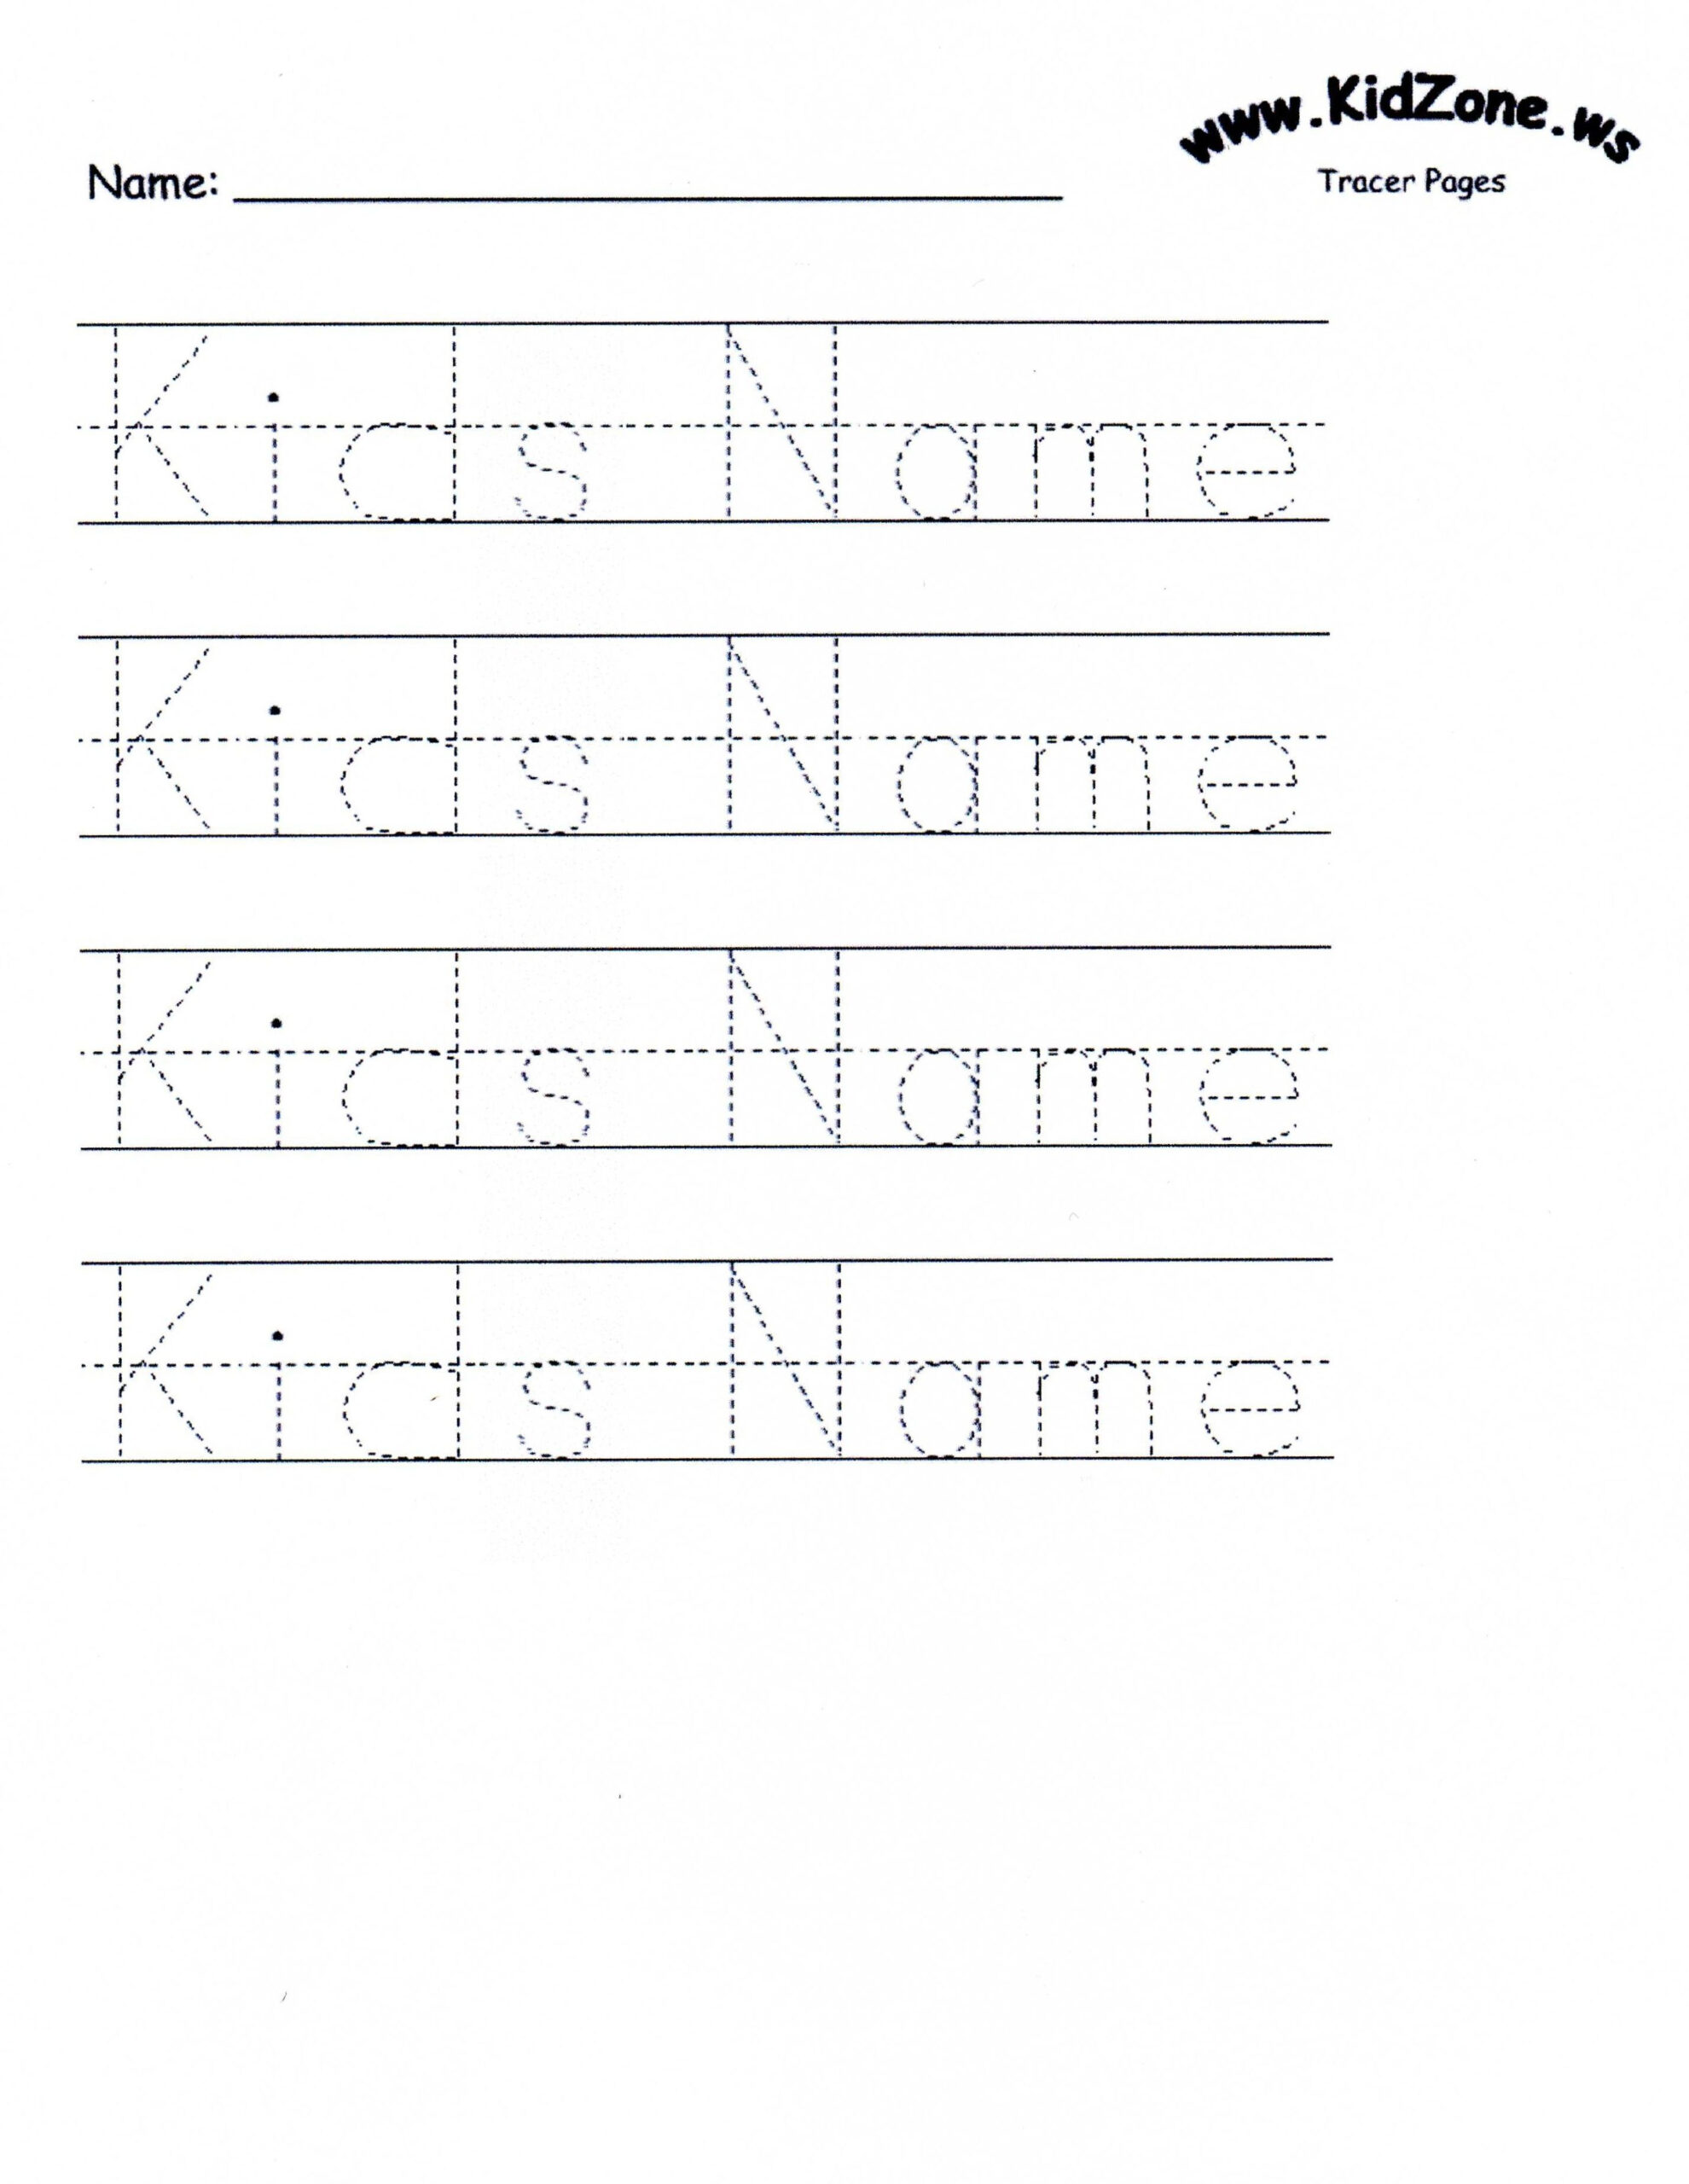 Name Tracing Worksheets For Printable. Name Tracing with Name Tracing Learning